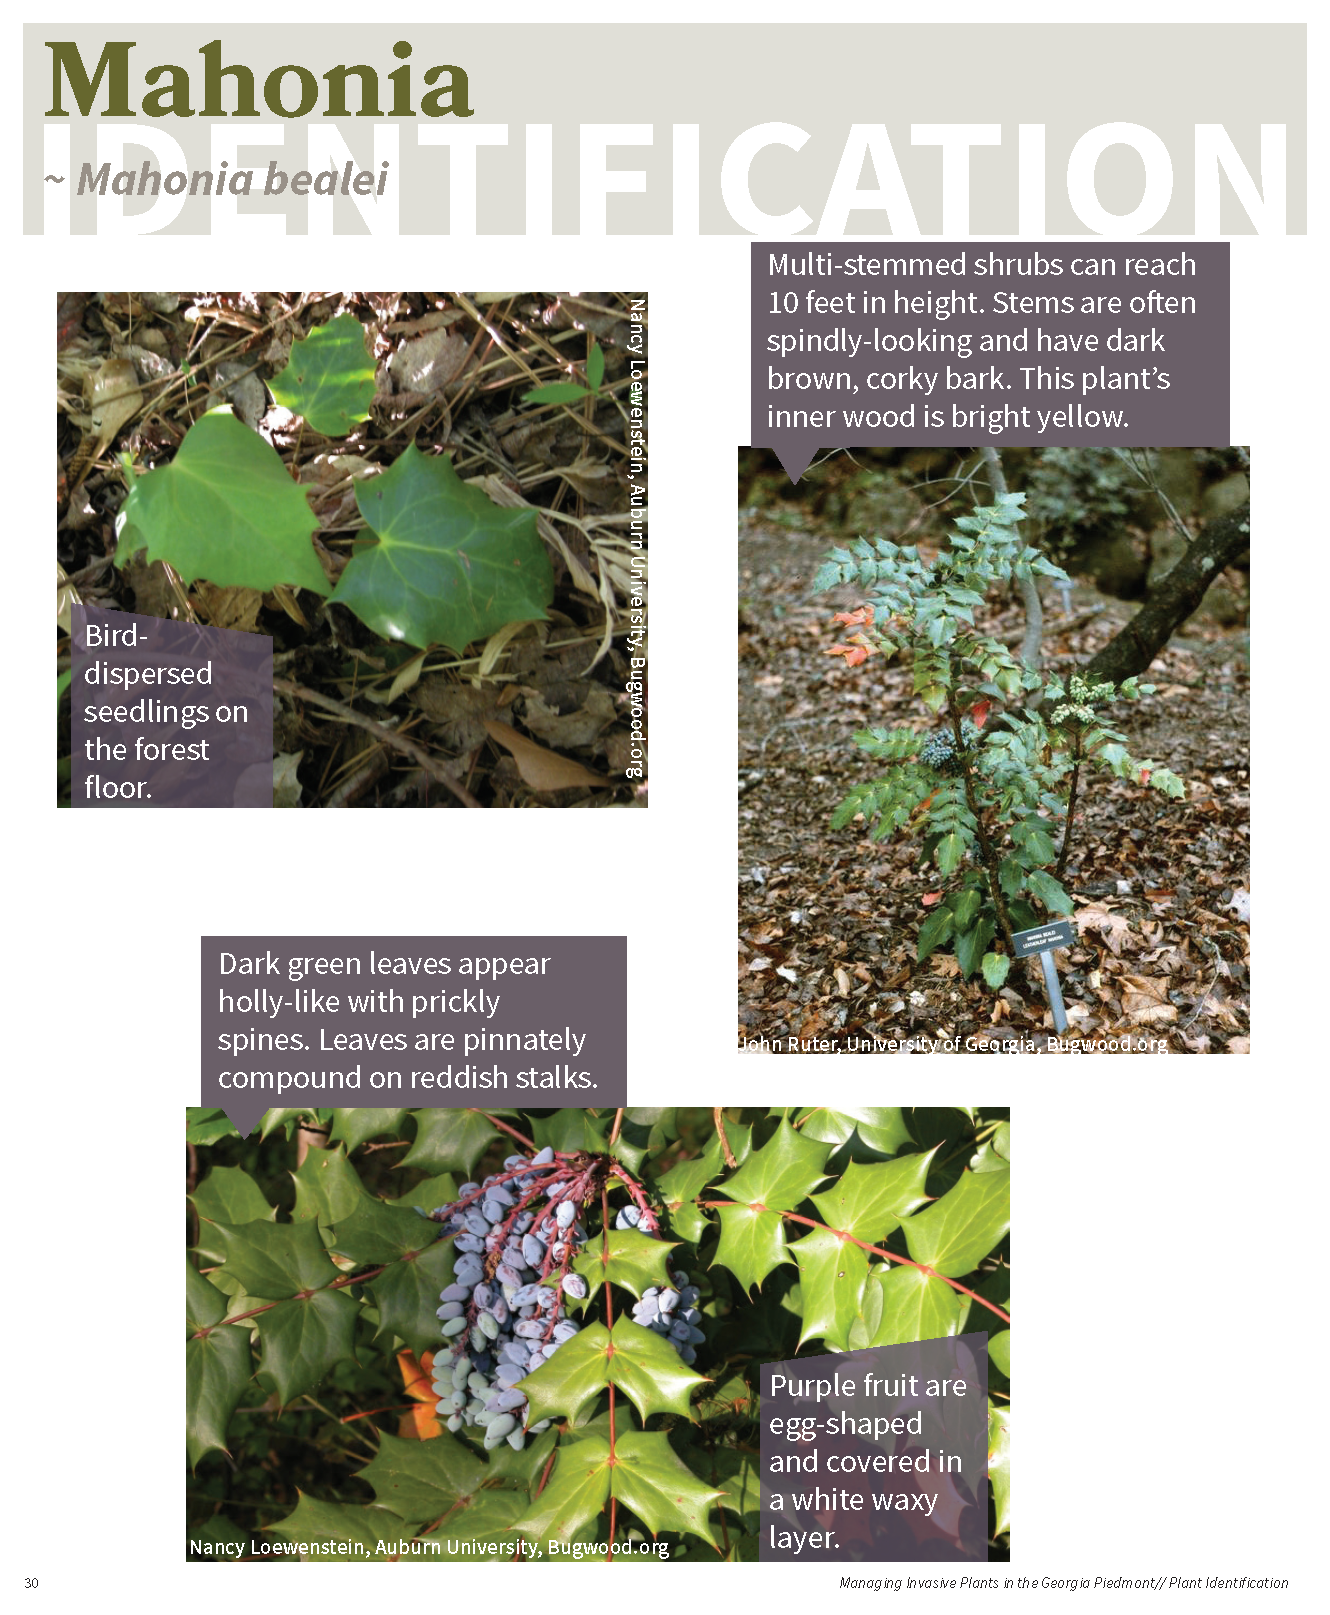 Managing Invasive Plants in the GA Piedmont for web_Page_29